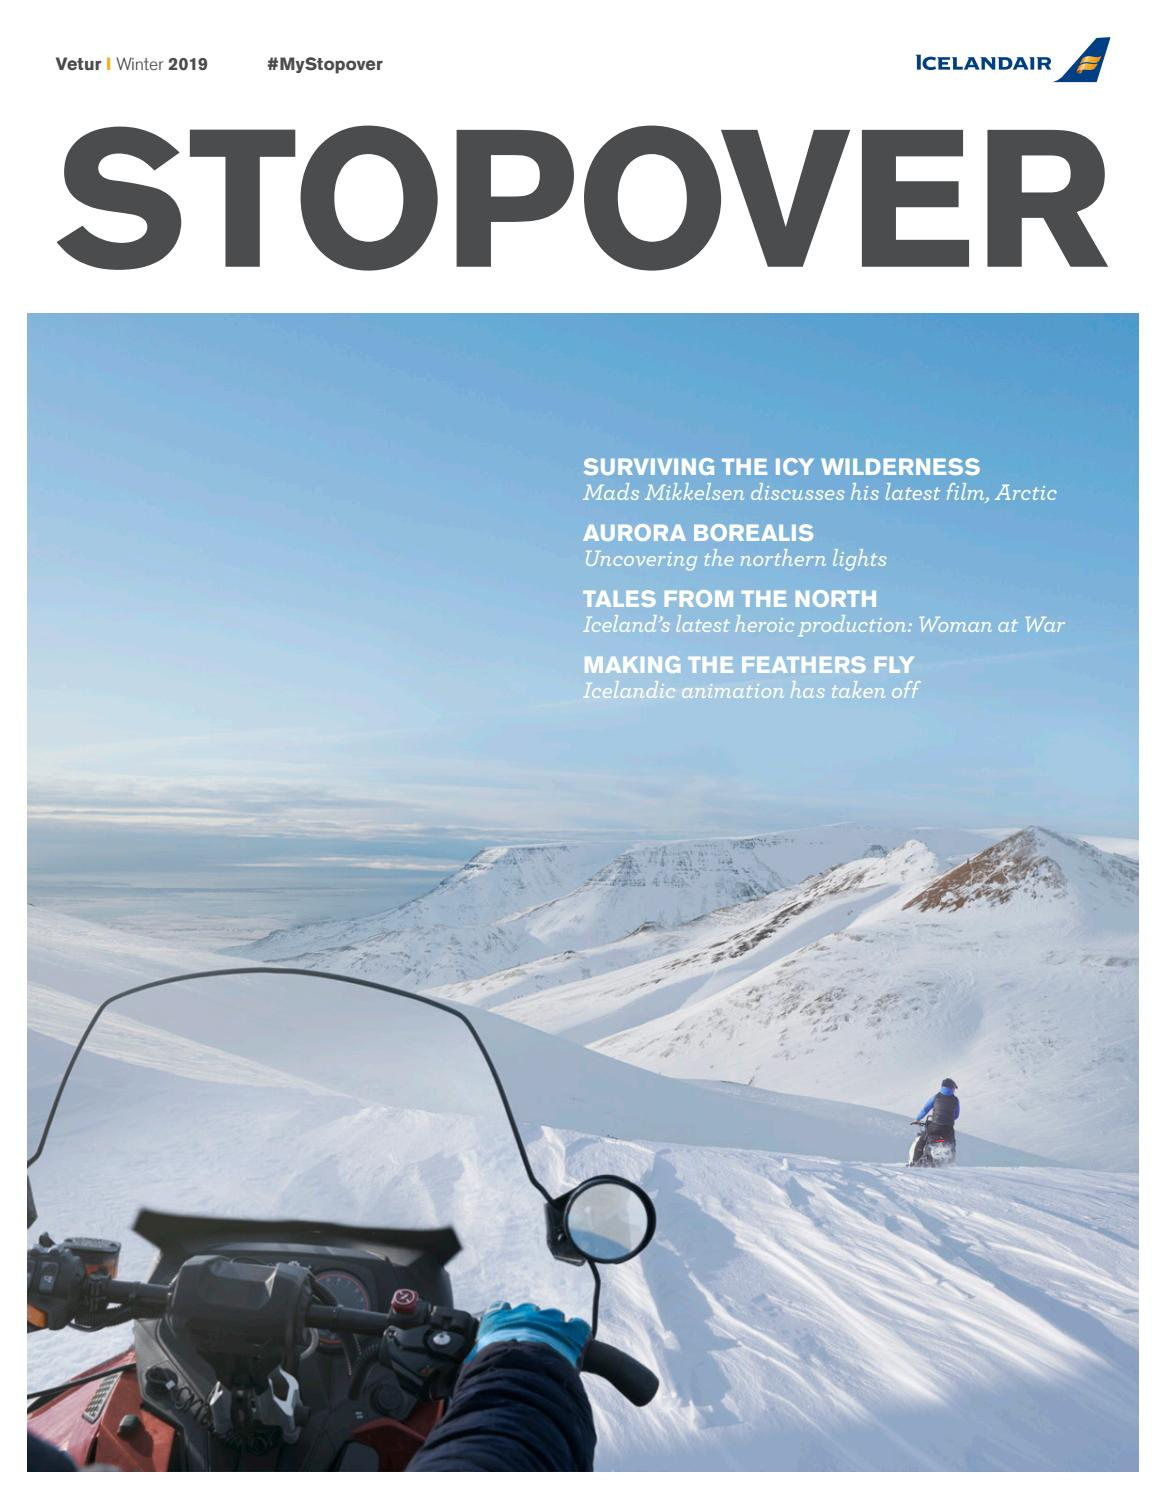 caf0ee8e6 Icelandair Stopover magazine - winter 2019 by Icelandair - issuu